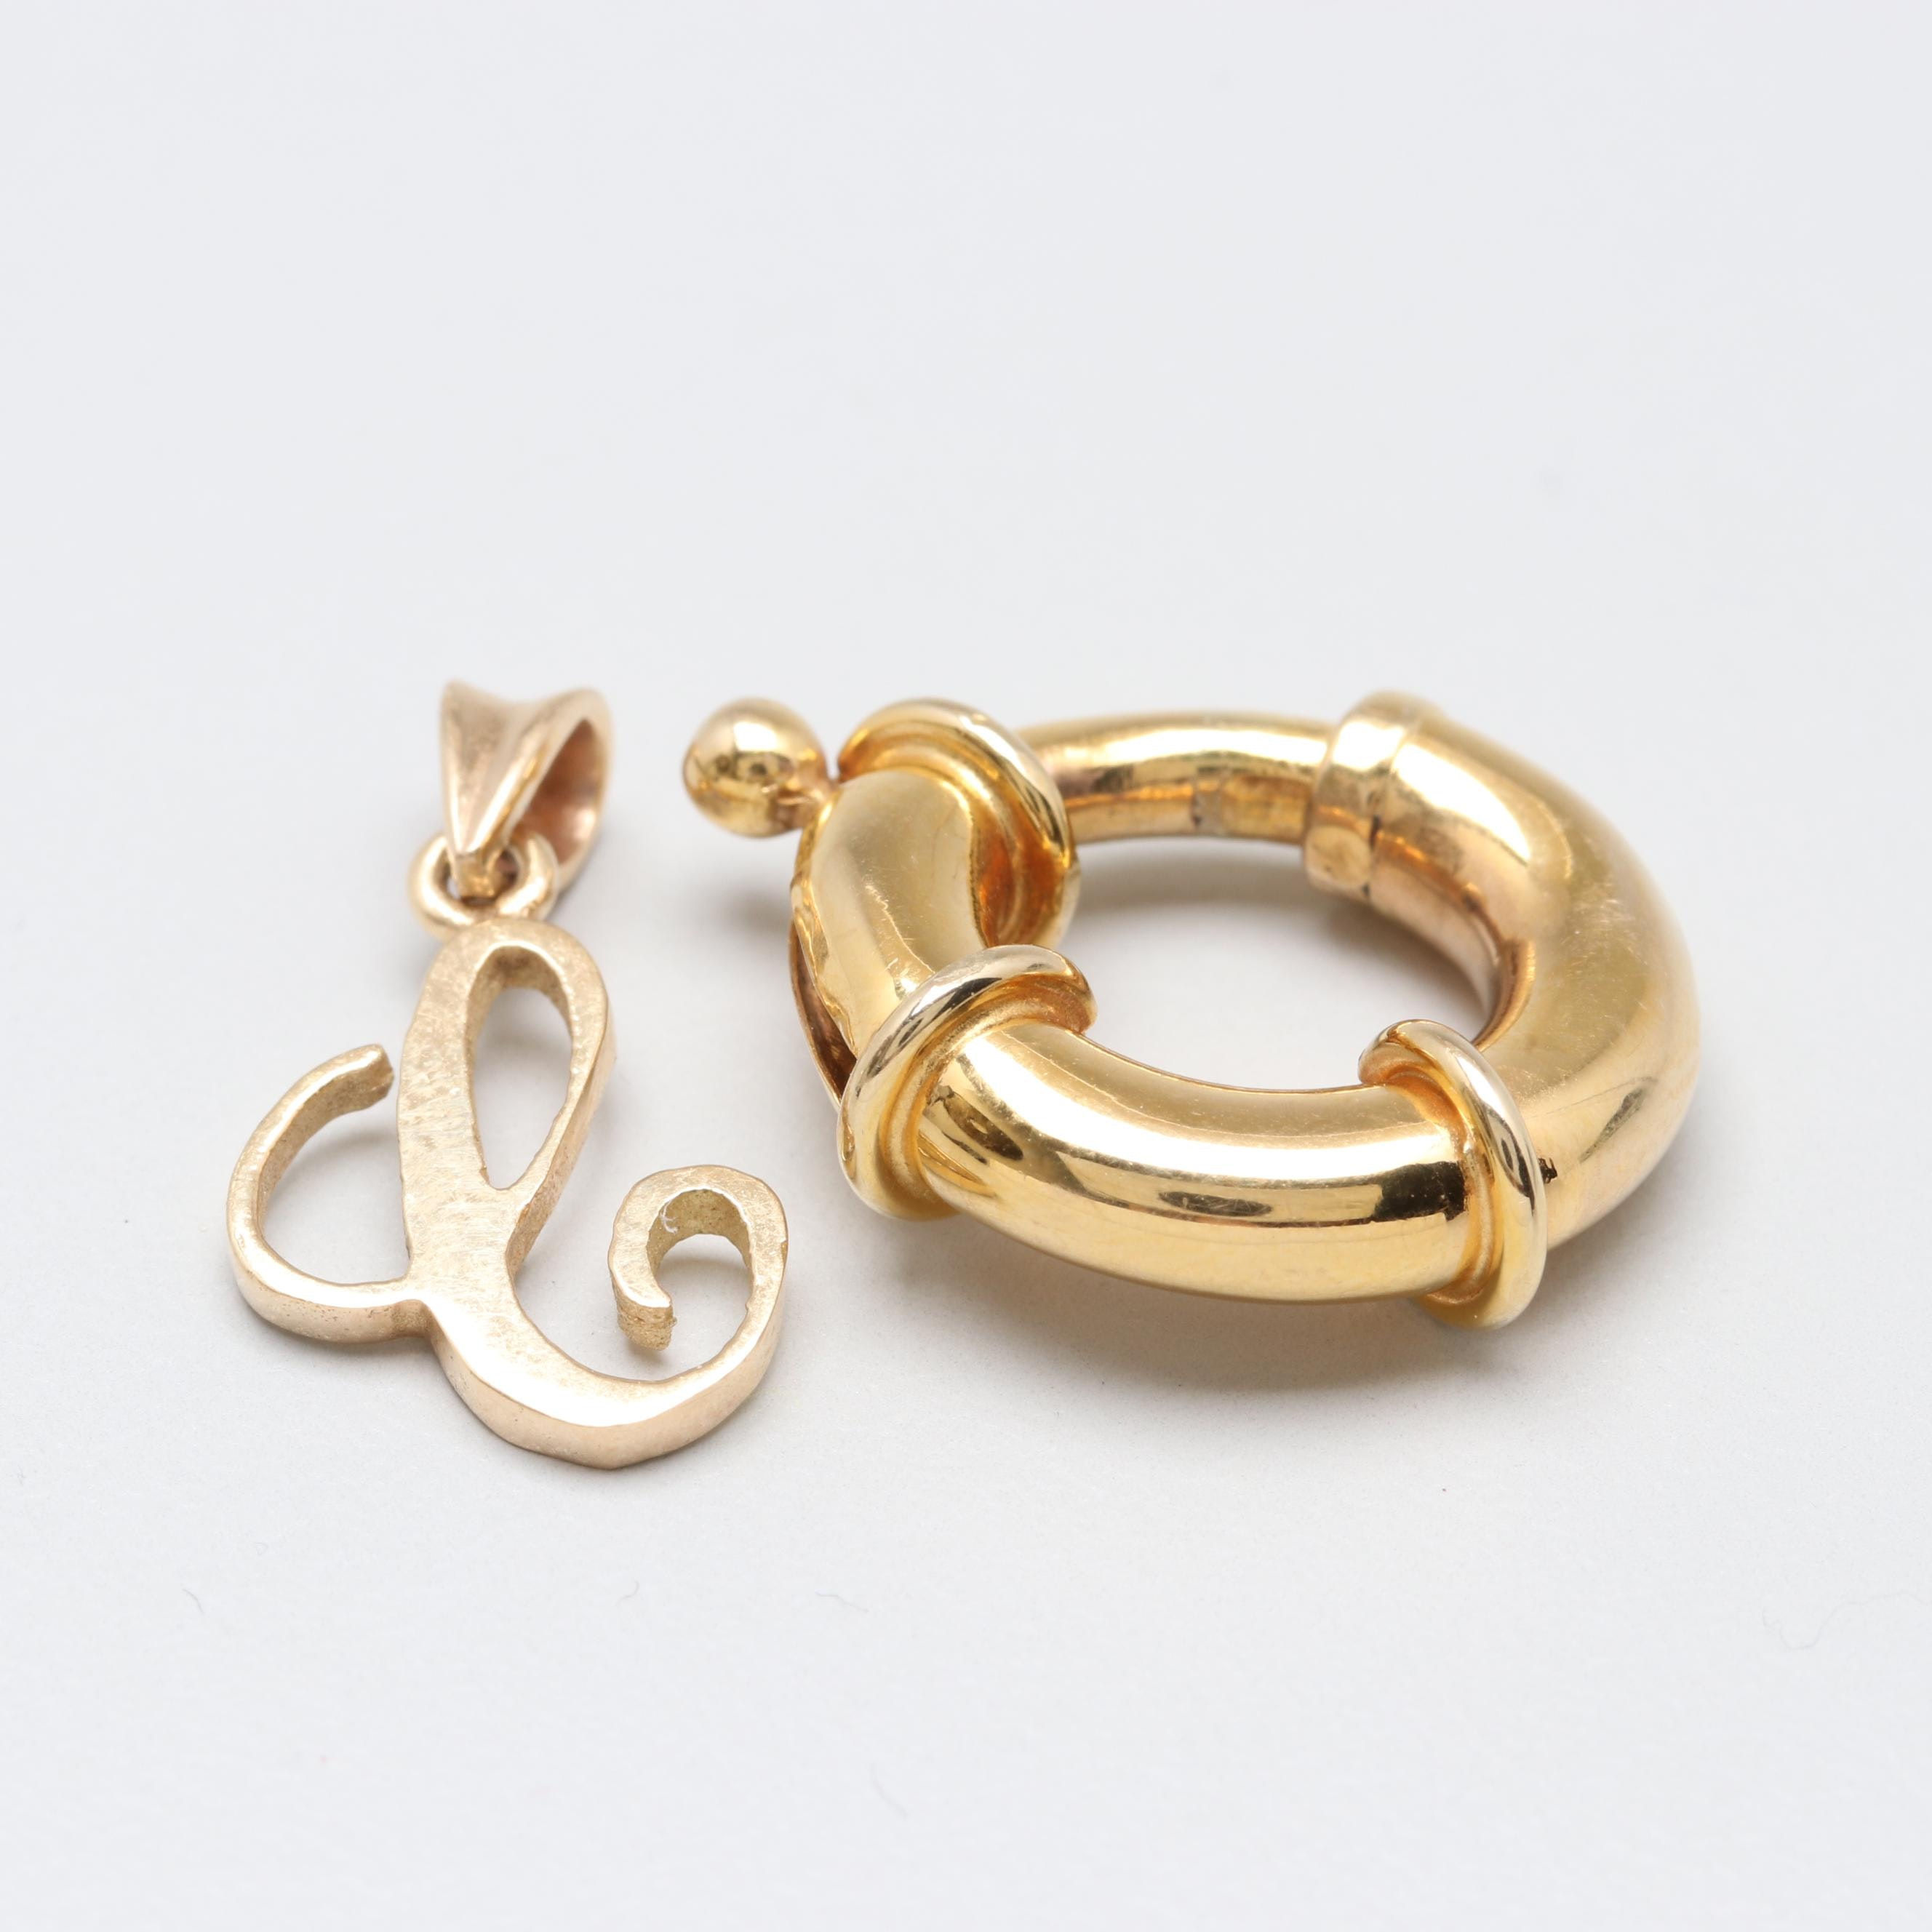 14K Yellow Gold Spring Ring and Letter Charm